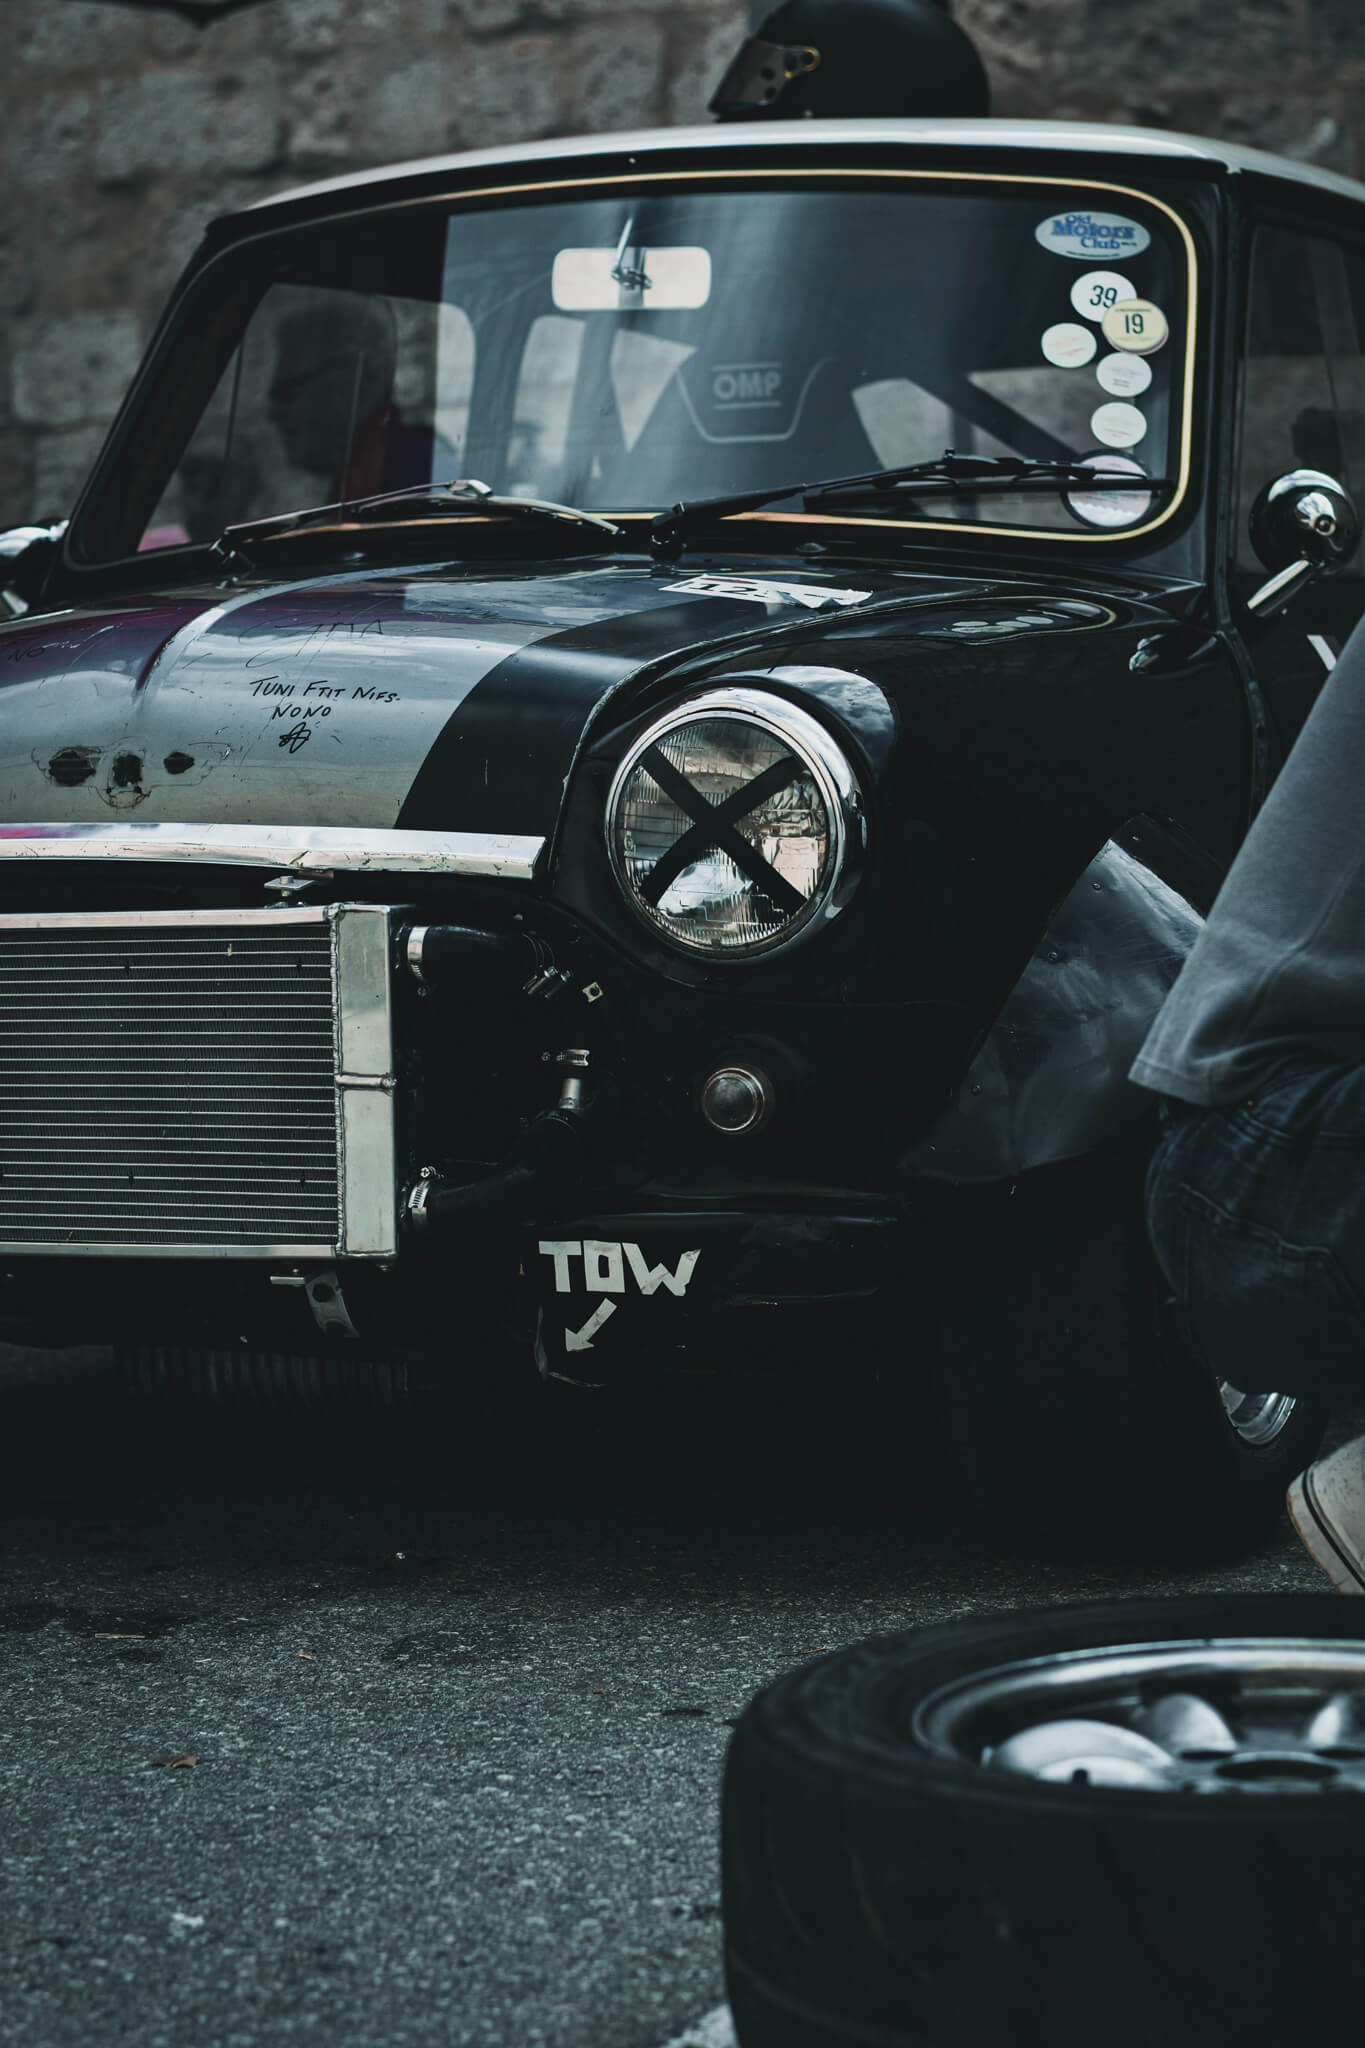 Design Icons: A Mini Monster